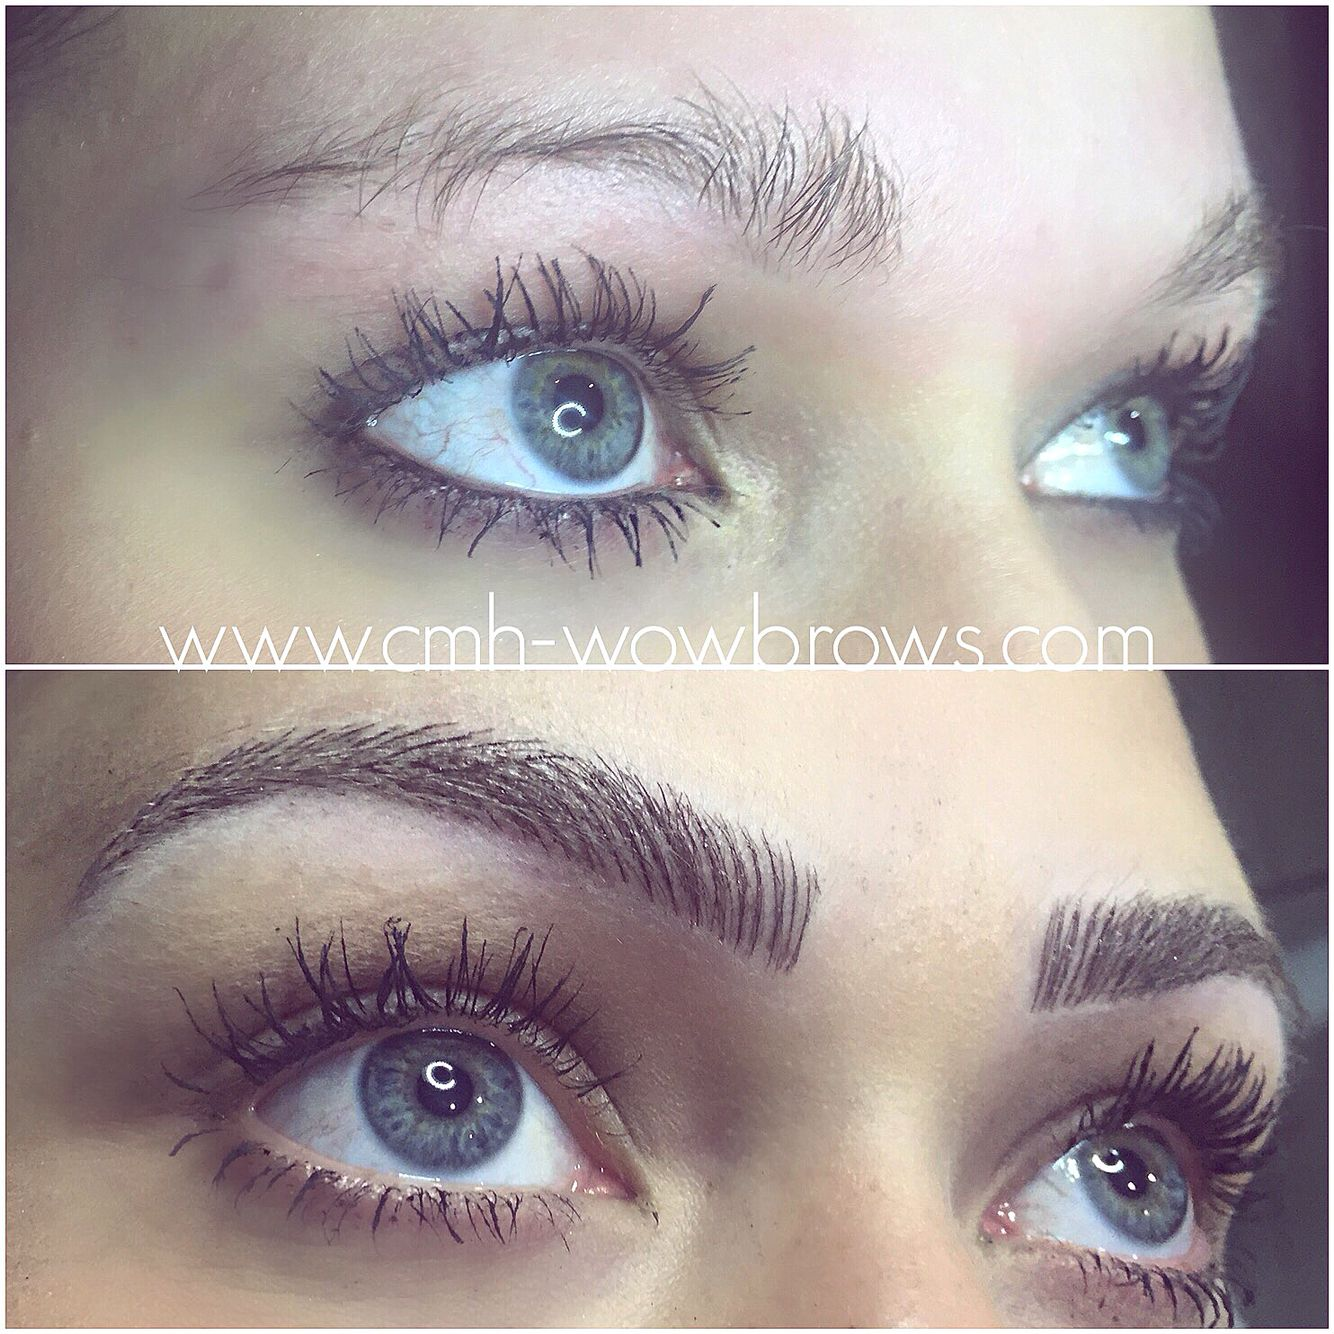 Eyebrow tattooing Feather touch Microblading Hair stroke